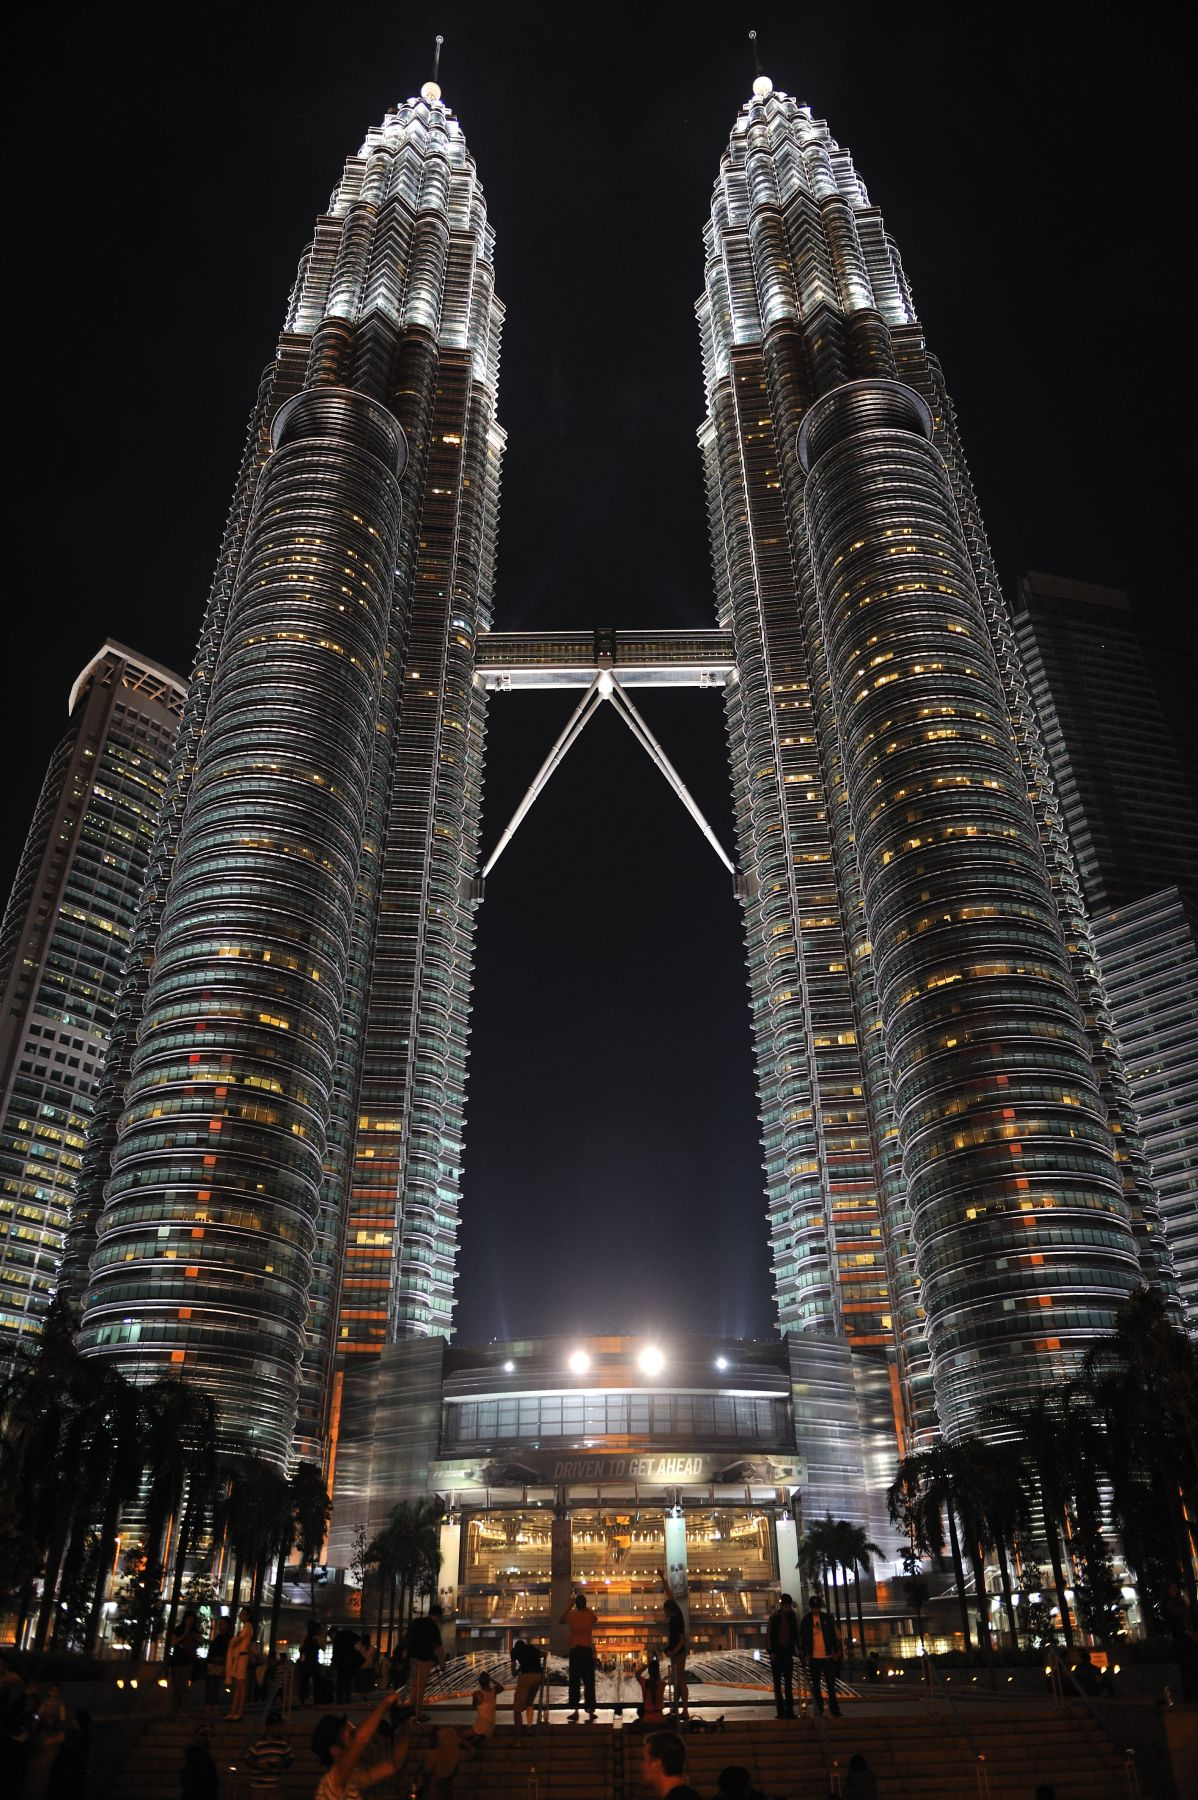 View of the Petronas Towers at night in Kuala Lumpur.